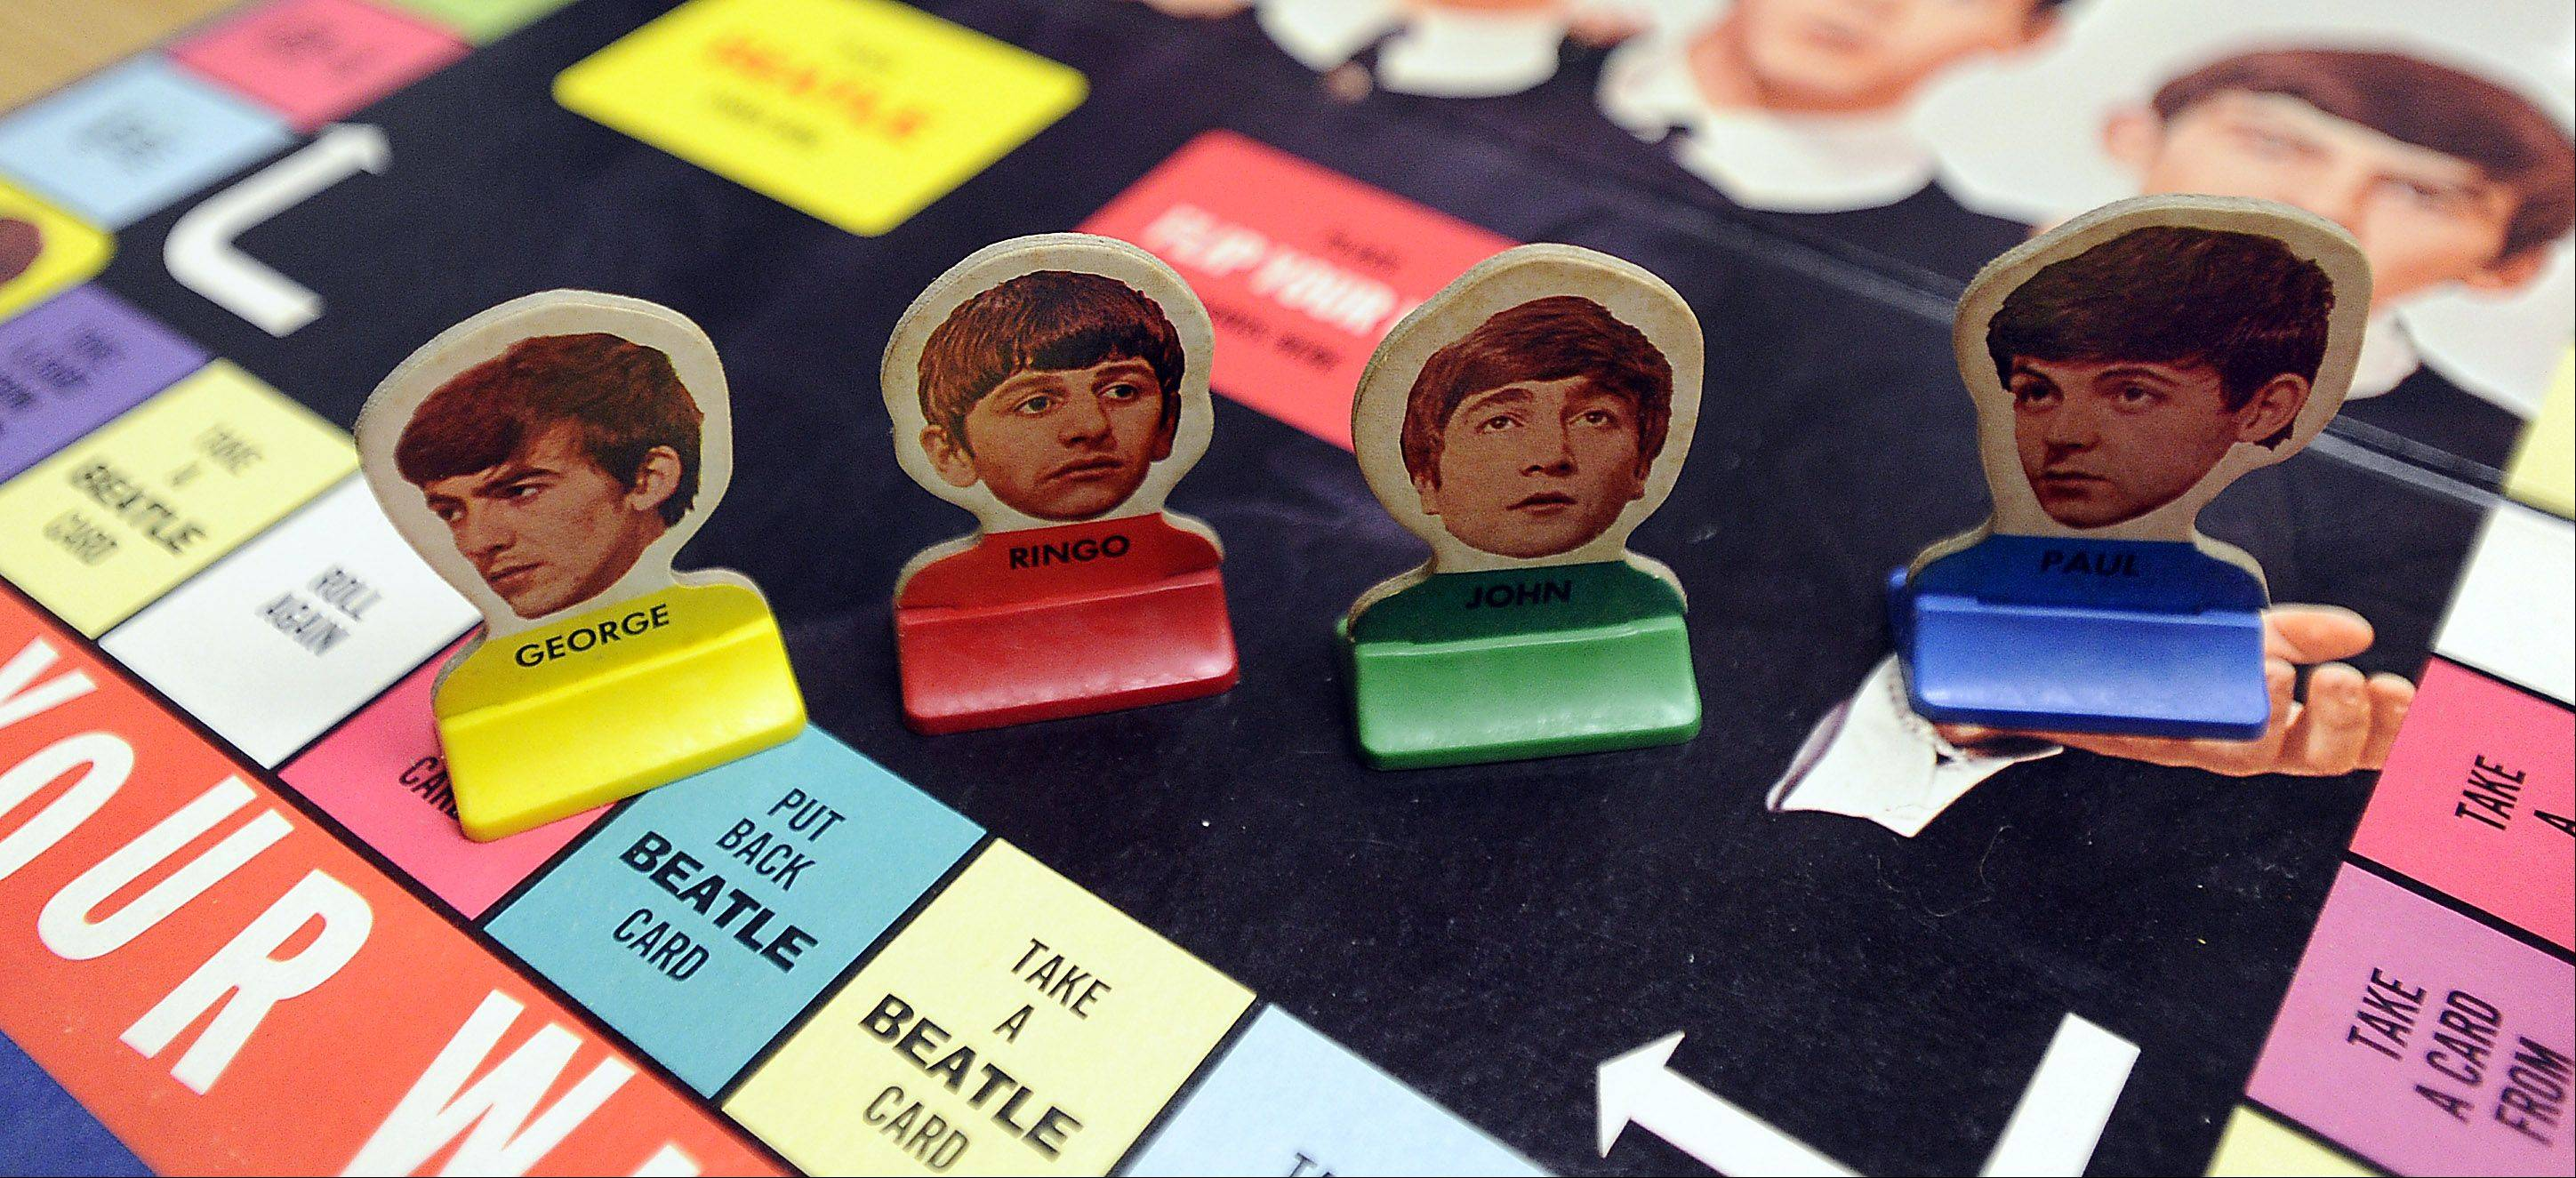 One of the more unusual products to feature The Beatles was this Flip Your Wig board game. It featured photographs of the Fab Four on the game pieces.